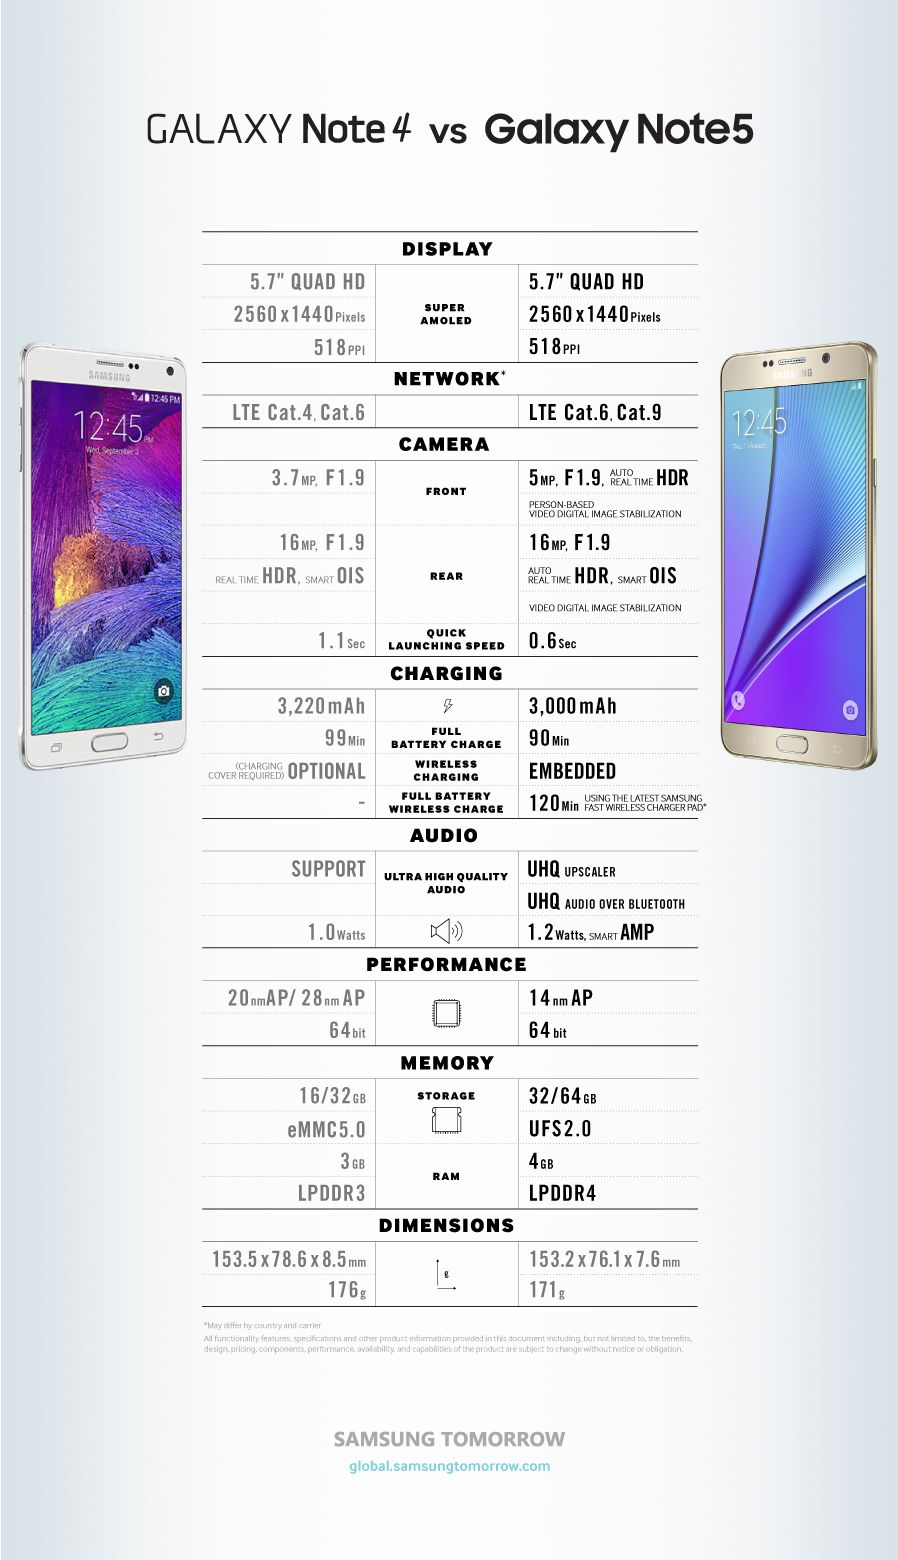 Galaxy note 7 official image gallery feast your eyes on samsung - Galaxy Note 4 Vs Galaxy Note 5 Comparison Of Features And Specifications Samsung